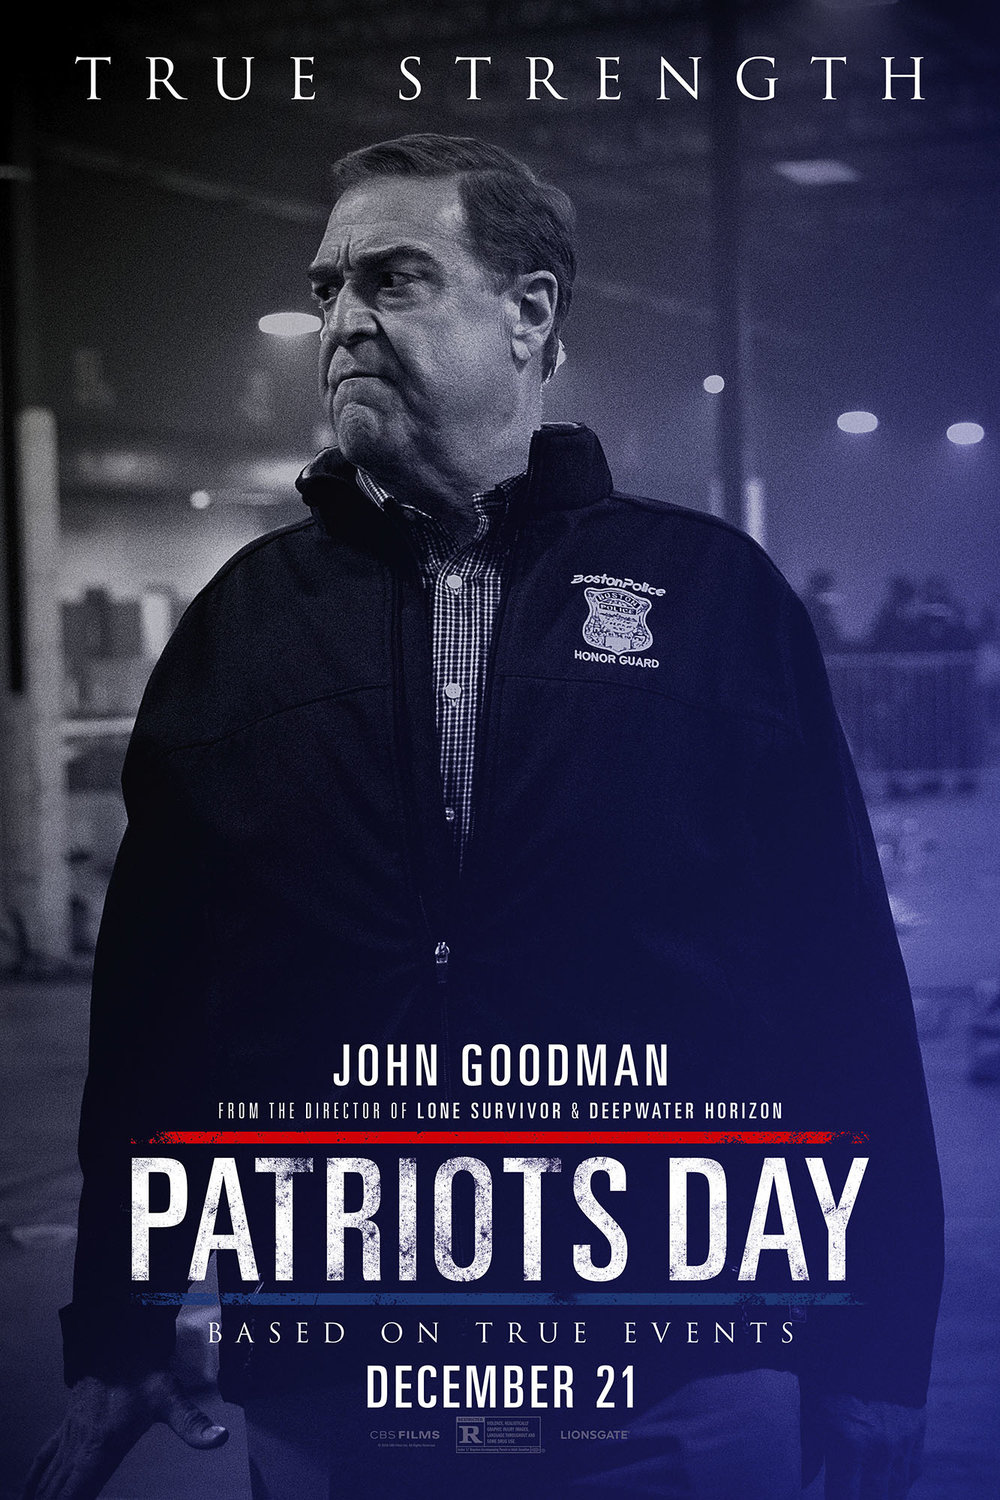 PatriotsDay_JG_48x72_WildPostings_100dpi.jpg